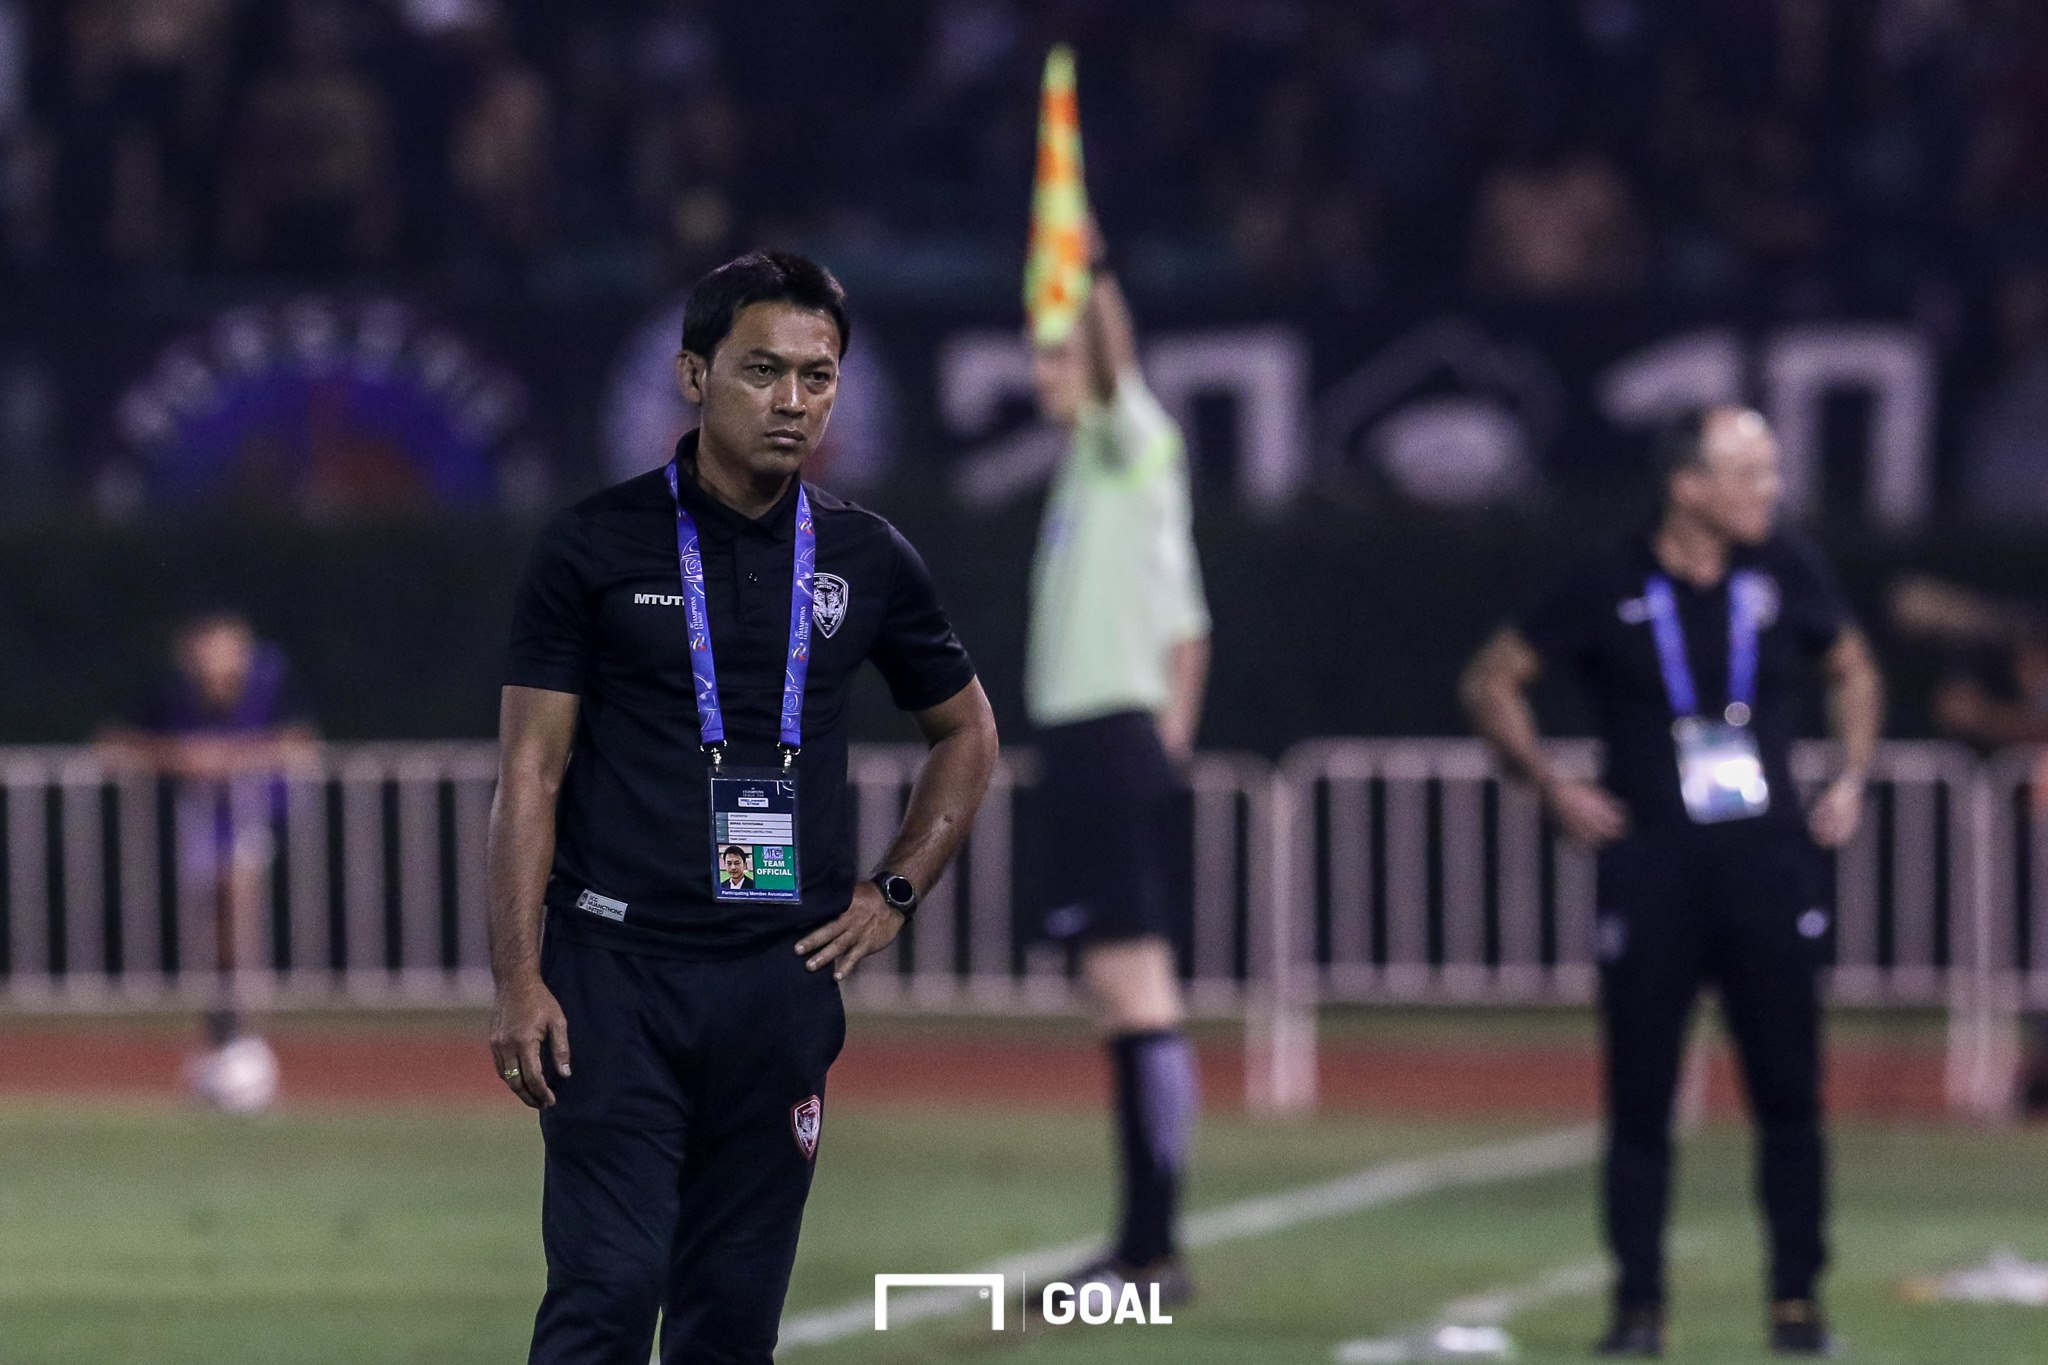 Morais concede that Muangthong were the better team